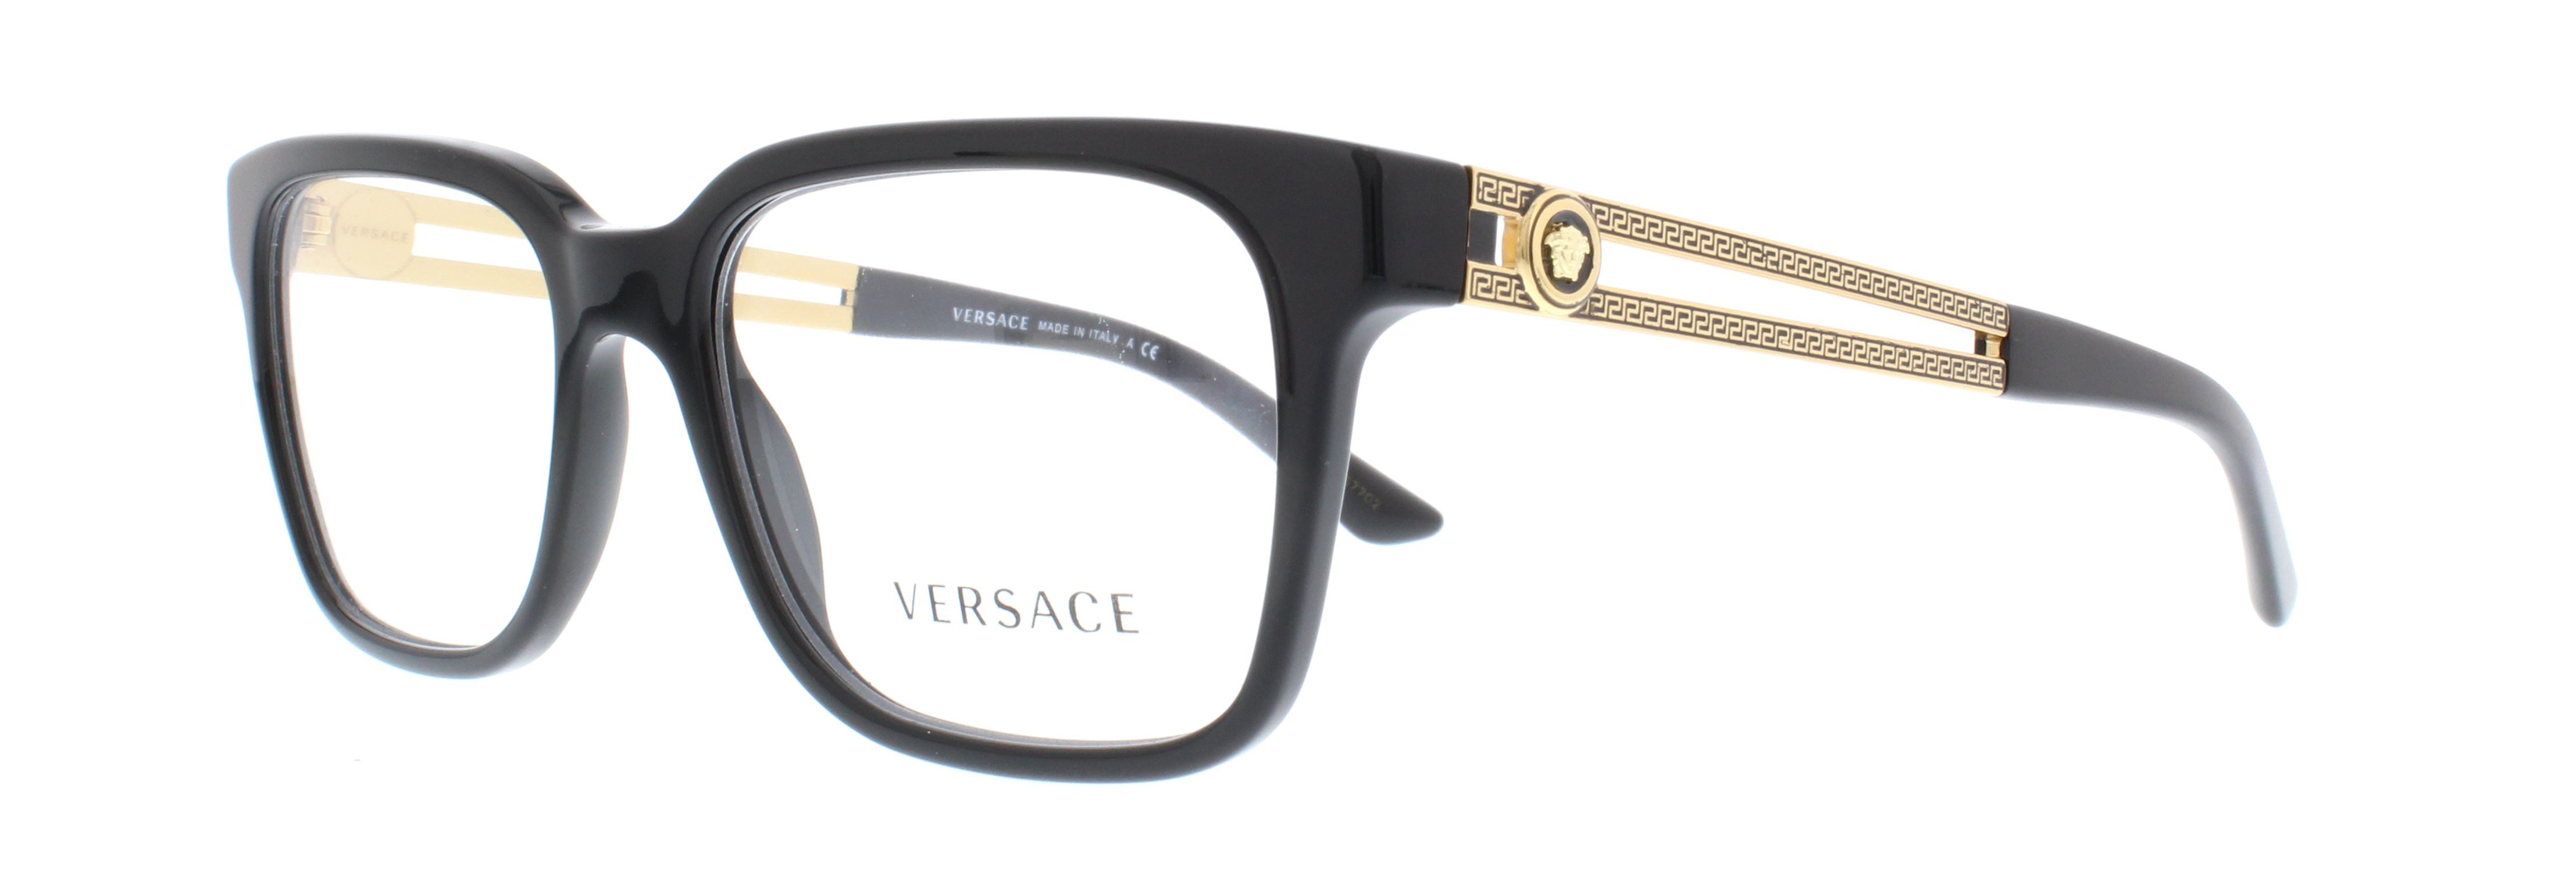 6a3e632bb354 Versace Glasses Frames Black And Gold - Bitterroot Public Library